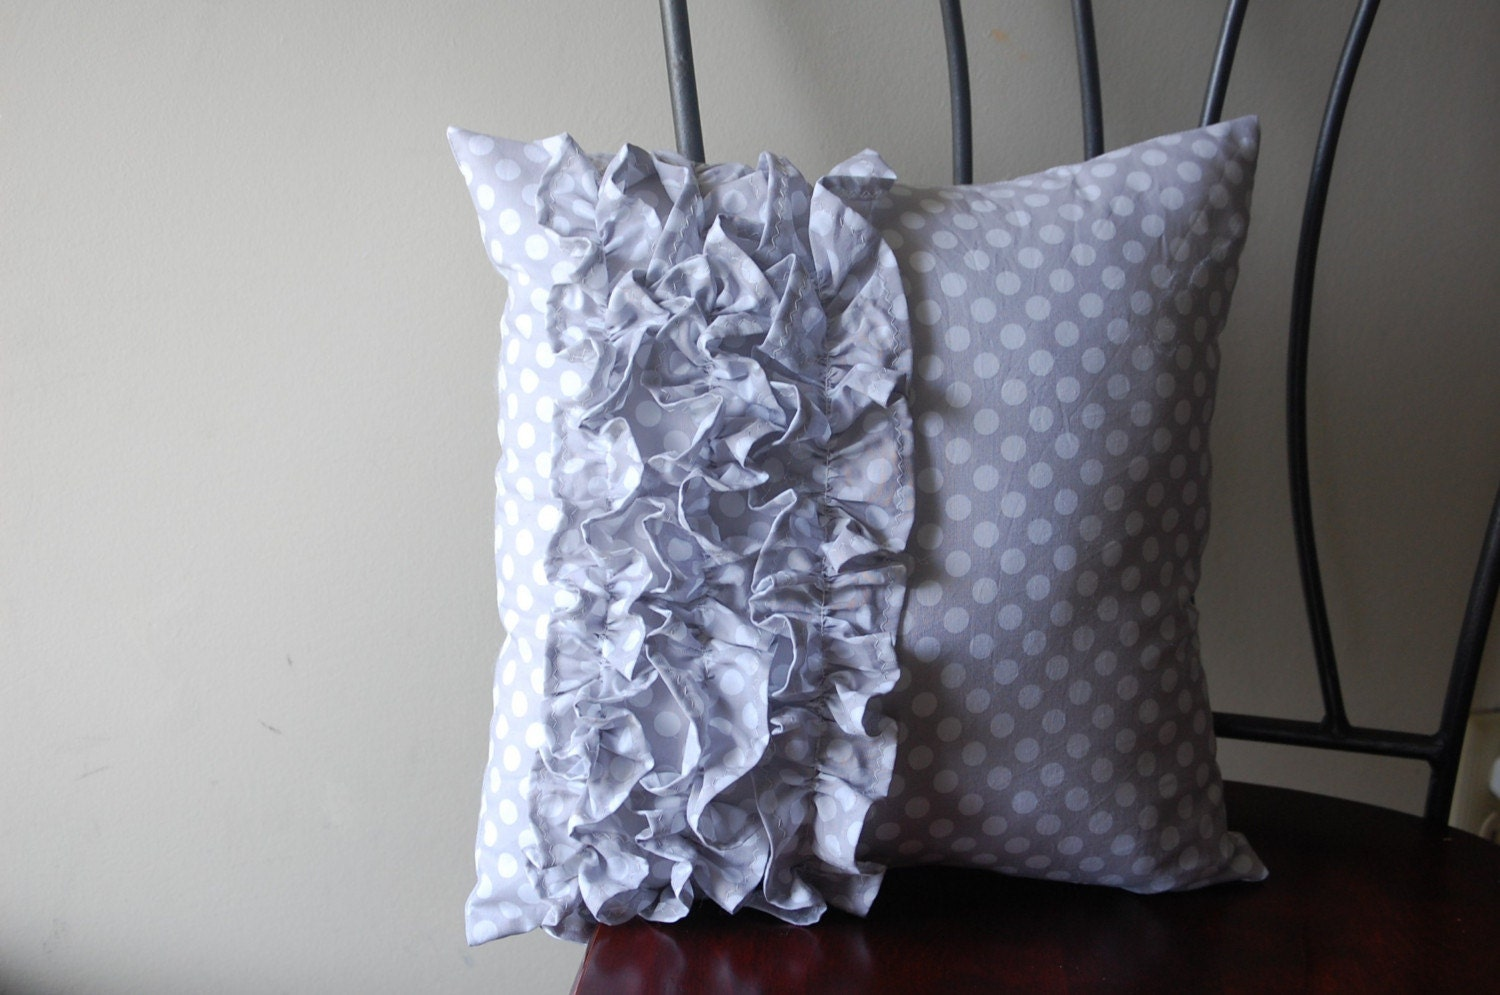 Side Ruffles Pillow in Gray/White Polkadot Cotton